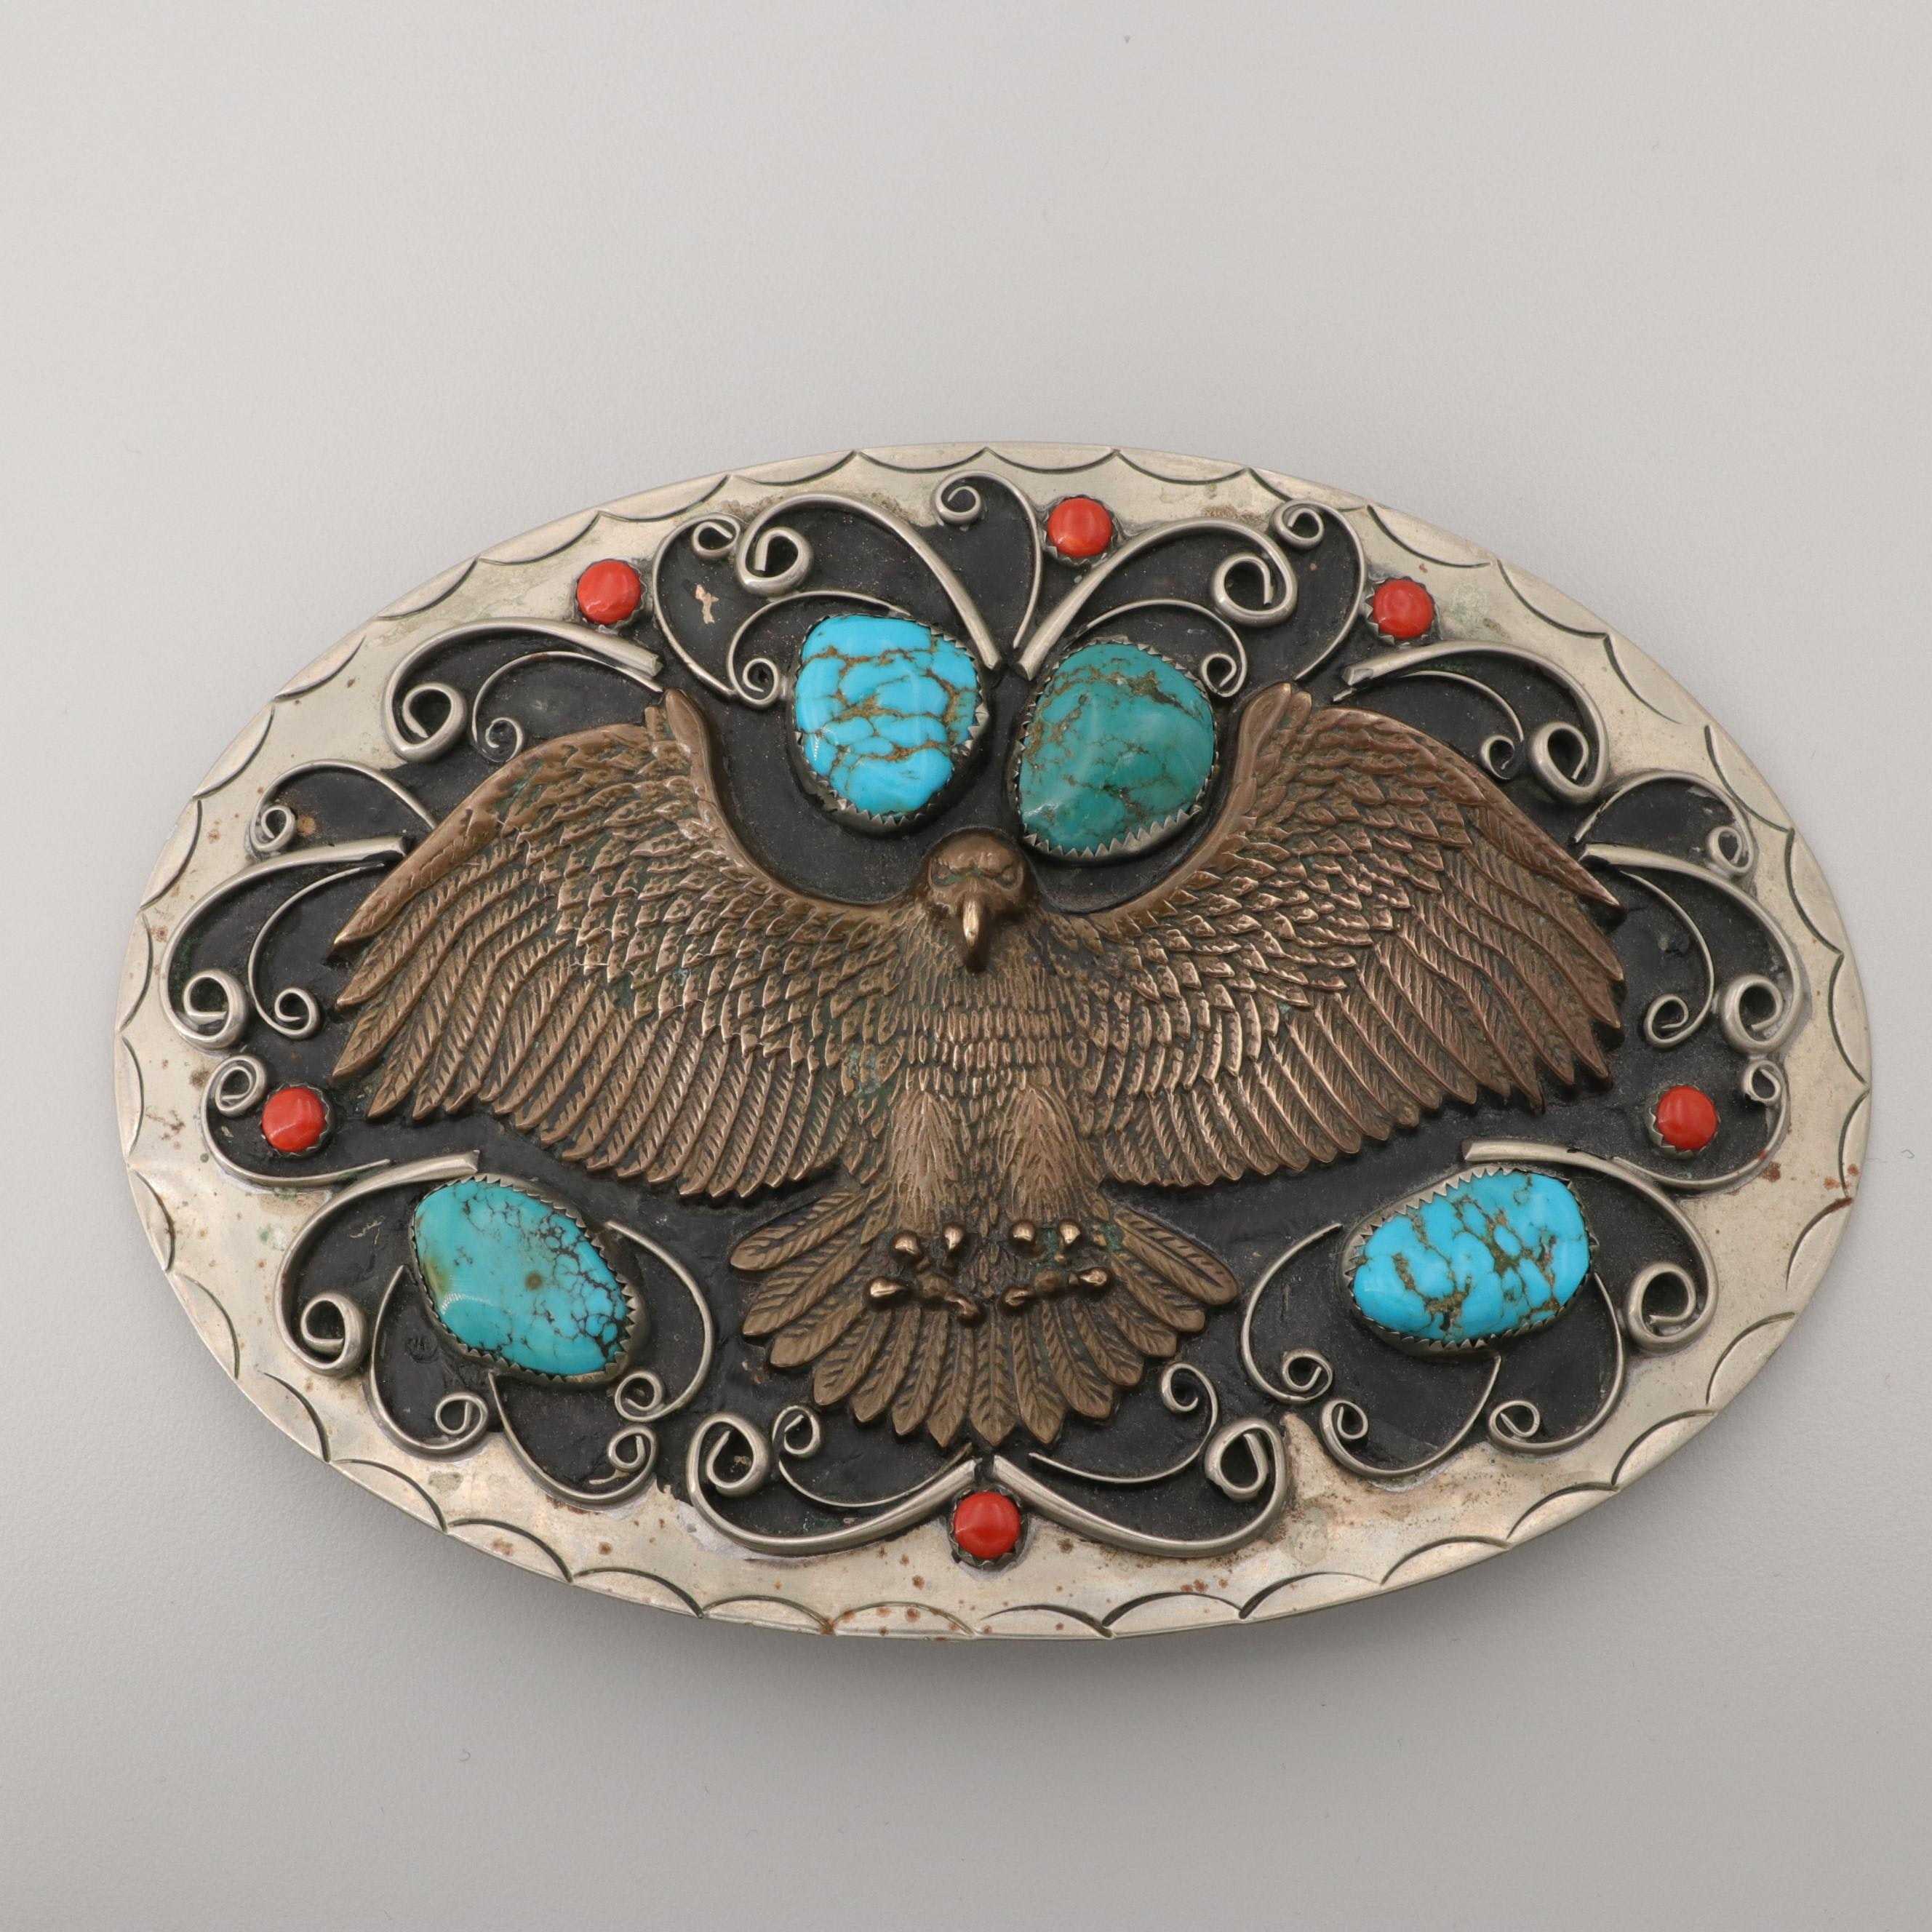 Southwestern Style Turquoise and Coral Belt Buckle Featuring Cast Brass Eagle